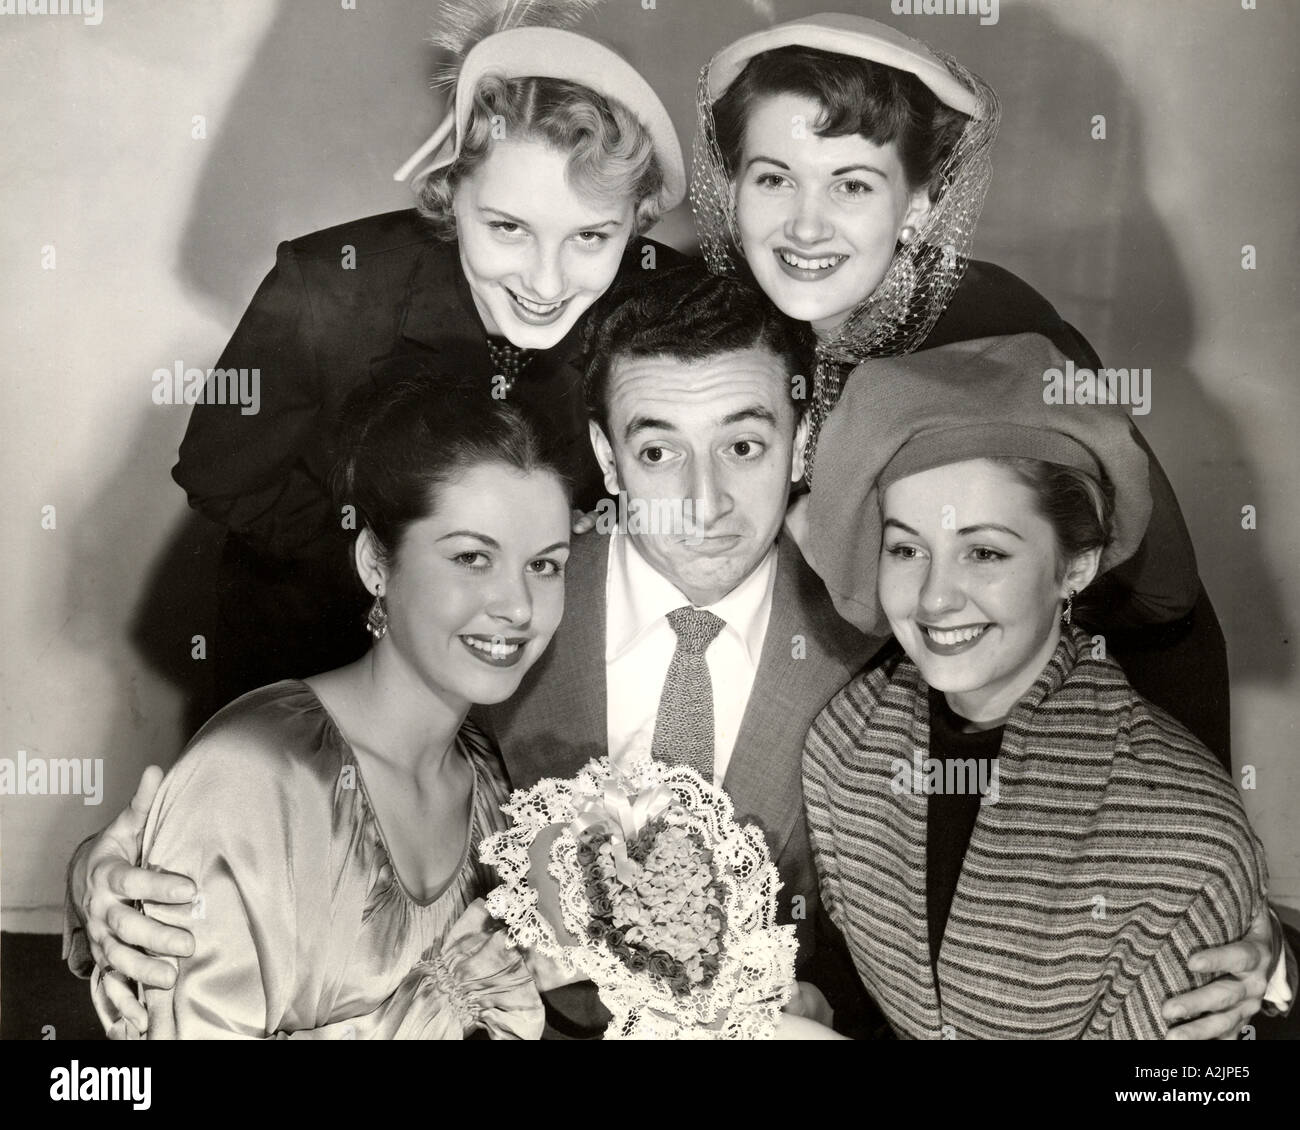 VIC DAMONE American singer actor when he was voted one ofAmerica s Ten Most Eligible Bachelors in 1949 - Stock Image